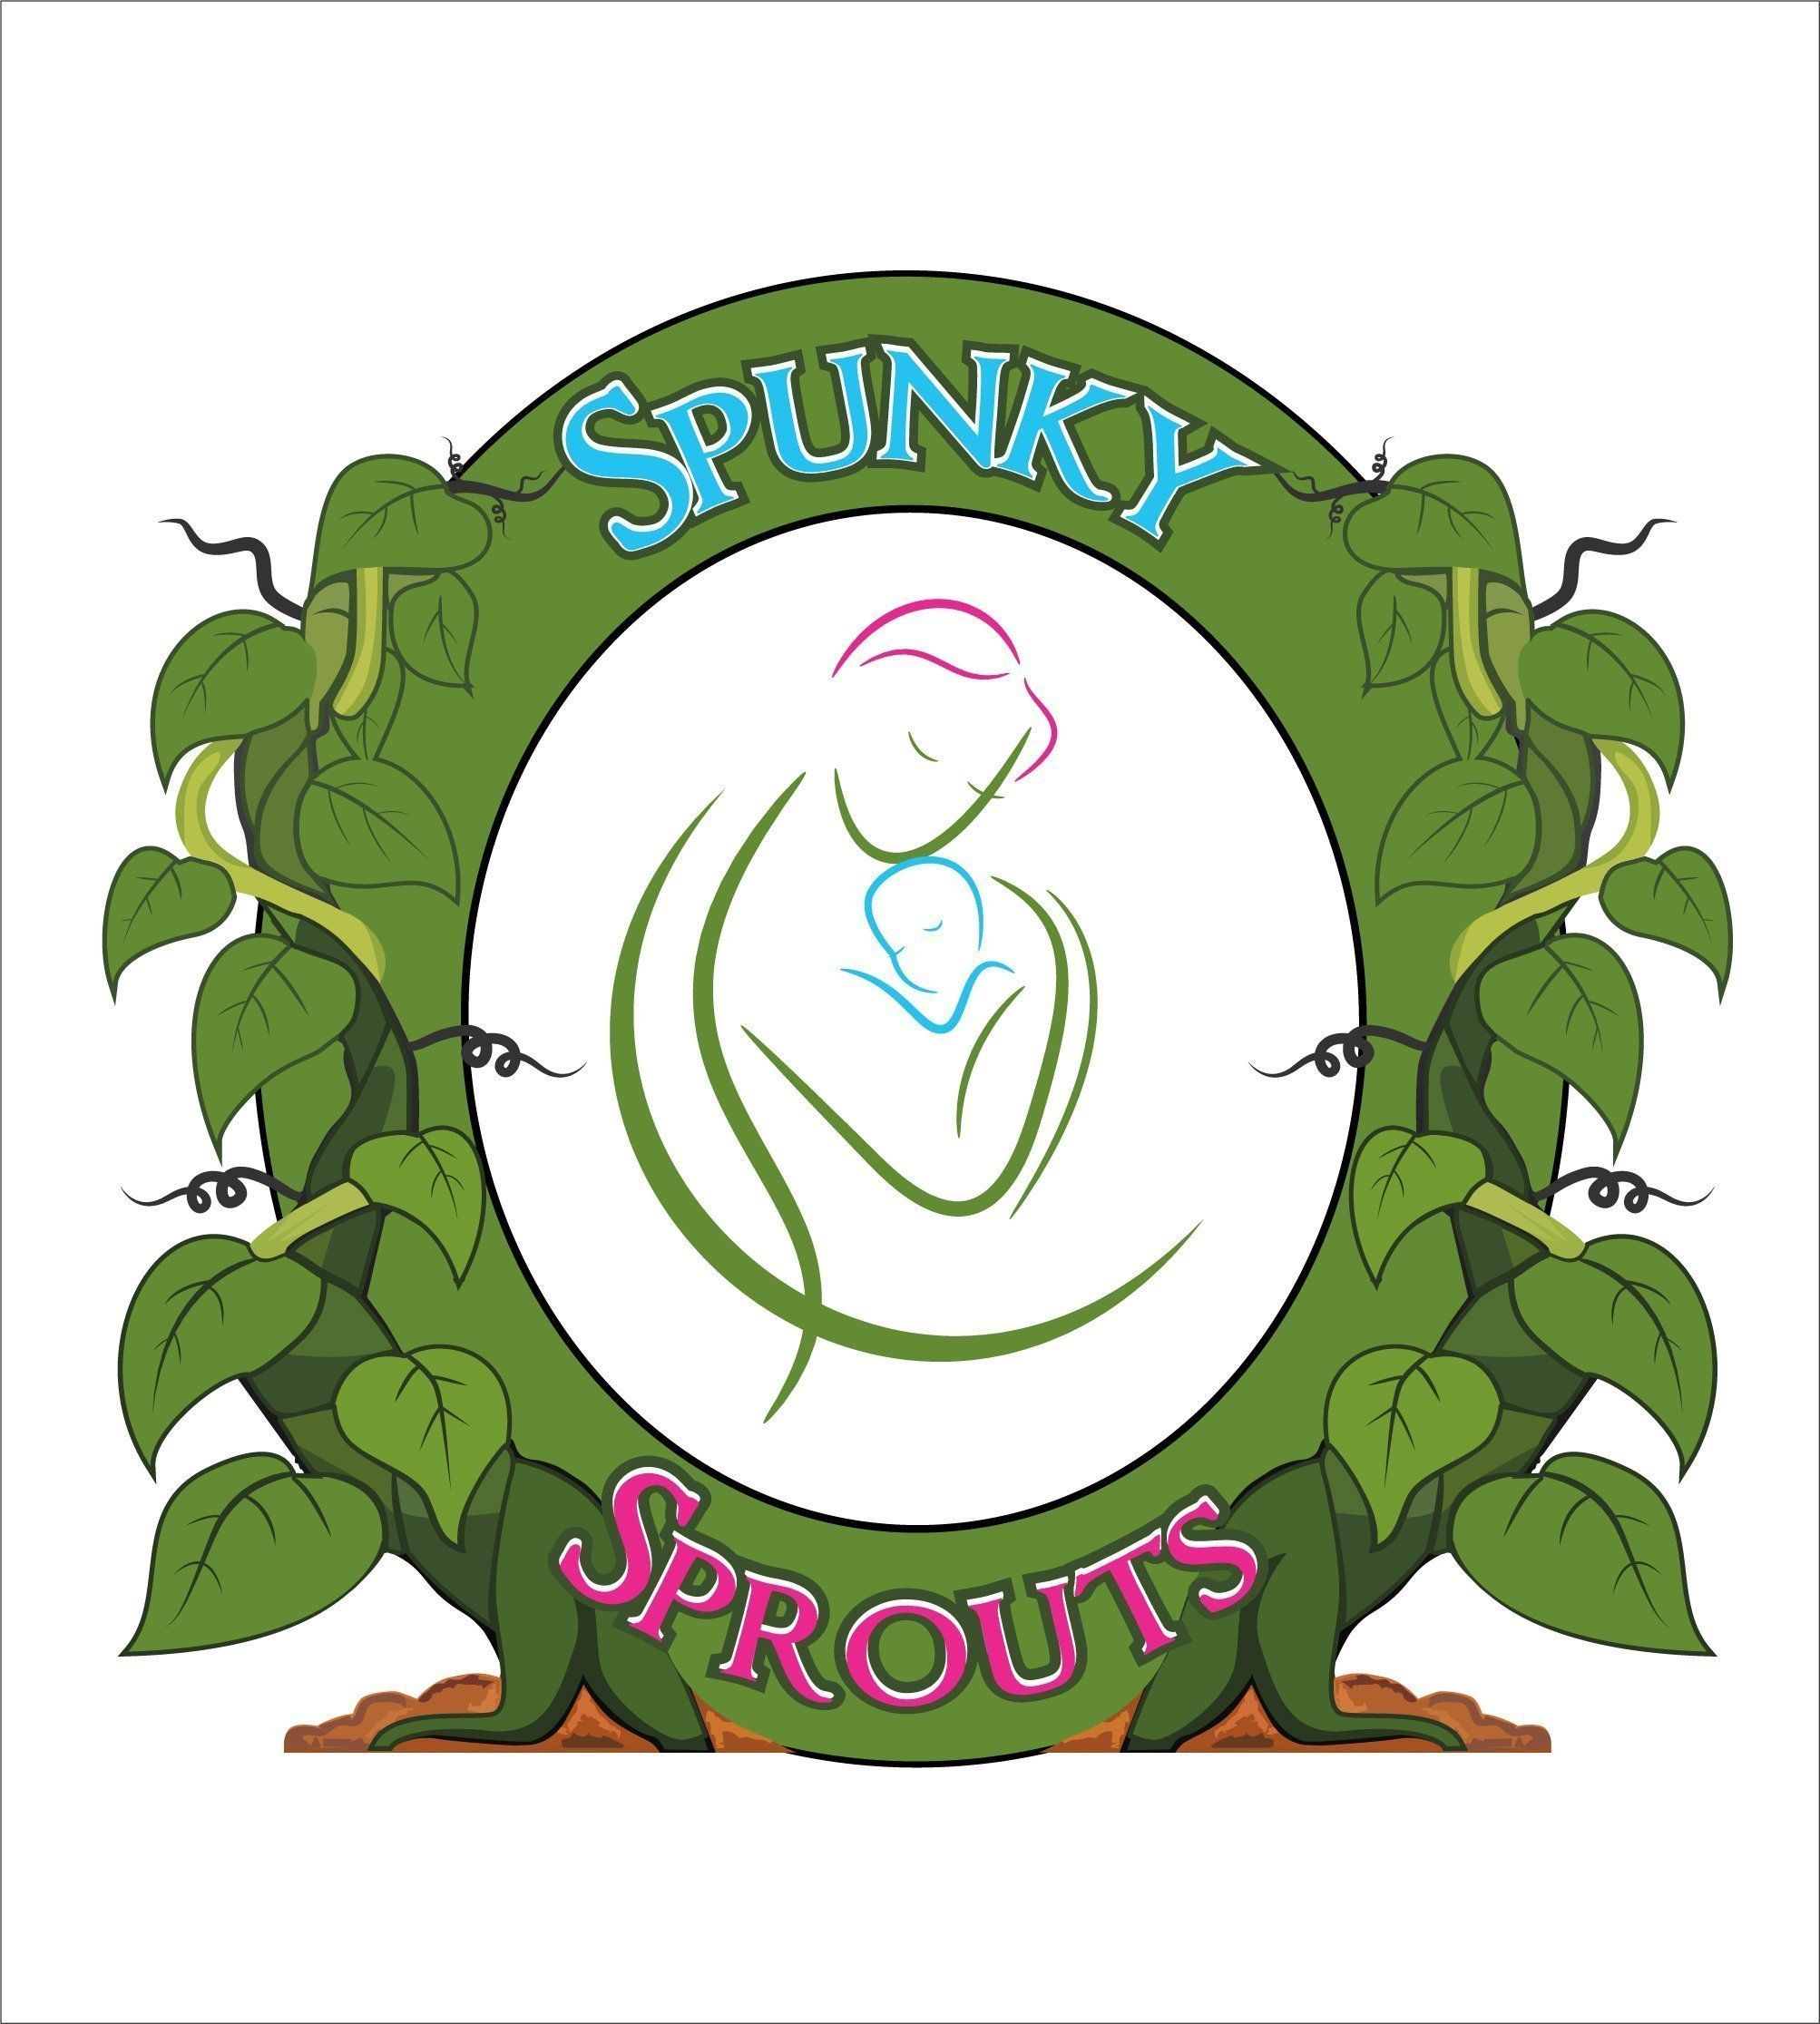 Spunky Sprouts Premium Double Layer Milestone Growth Blanket (WOOD ARROWS INCLUDED) Large Size. Weeks & Months-Great Gift For Newborns and Expecting Moms Photography for Boys or Girls by Spunky Sprouts (Image #8)